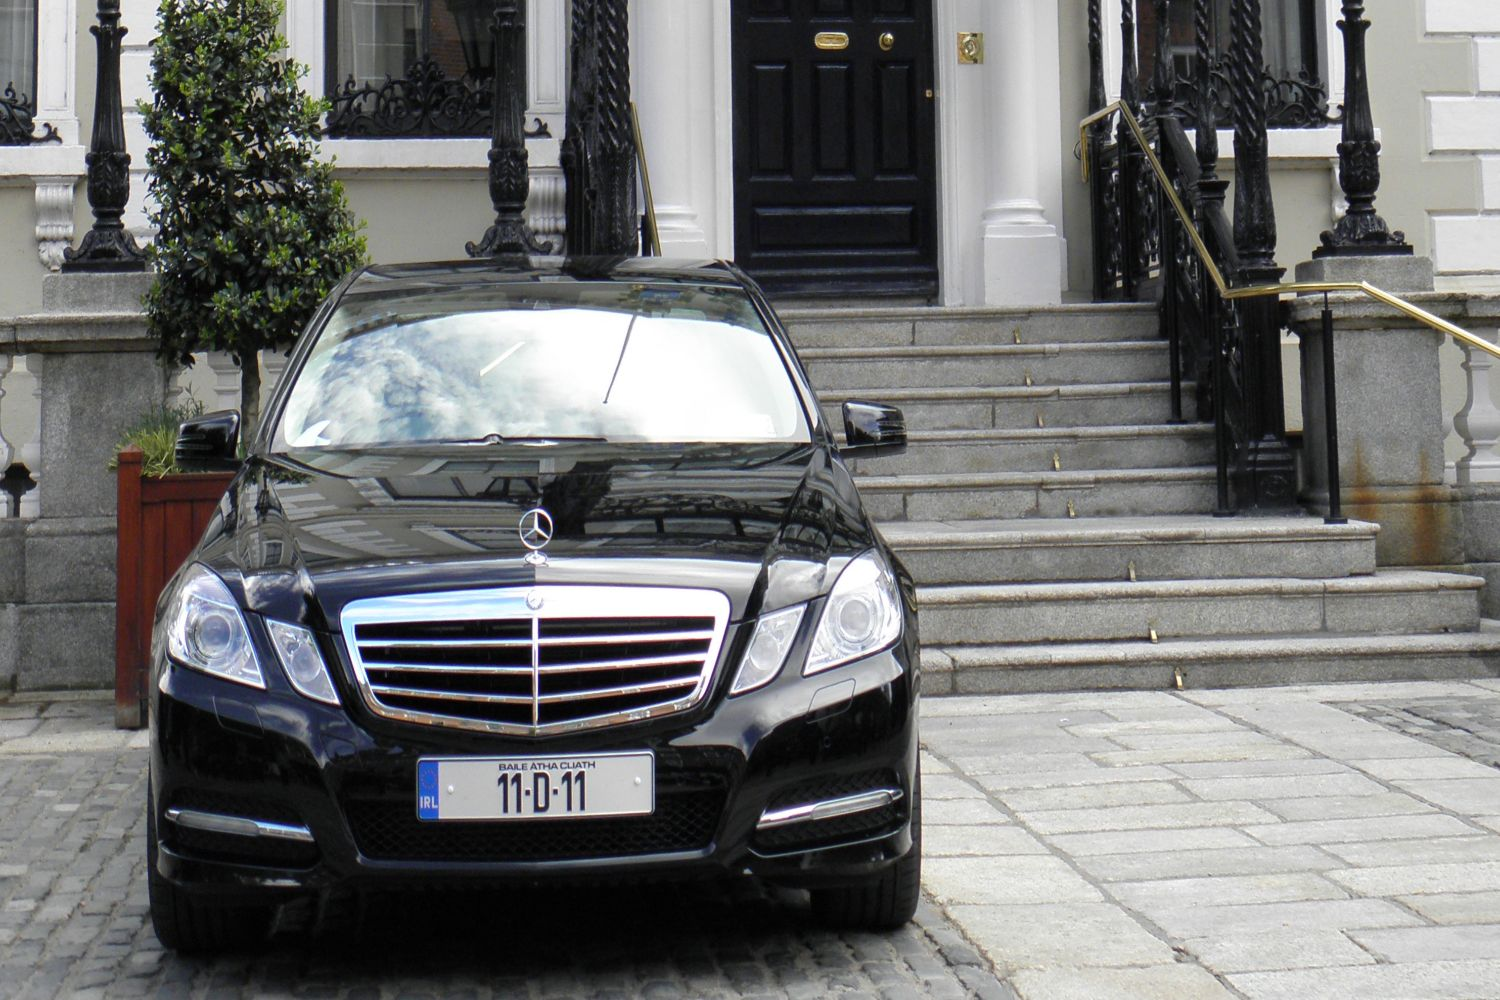 Lord Mayor's Car outside Mansion Housea